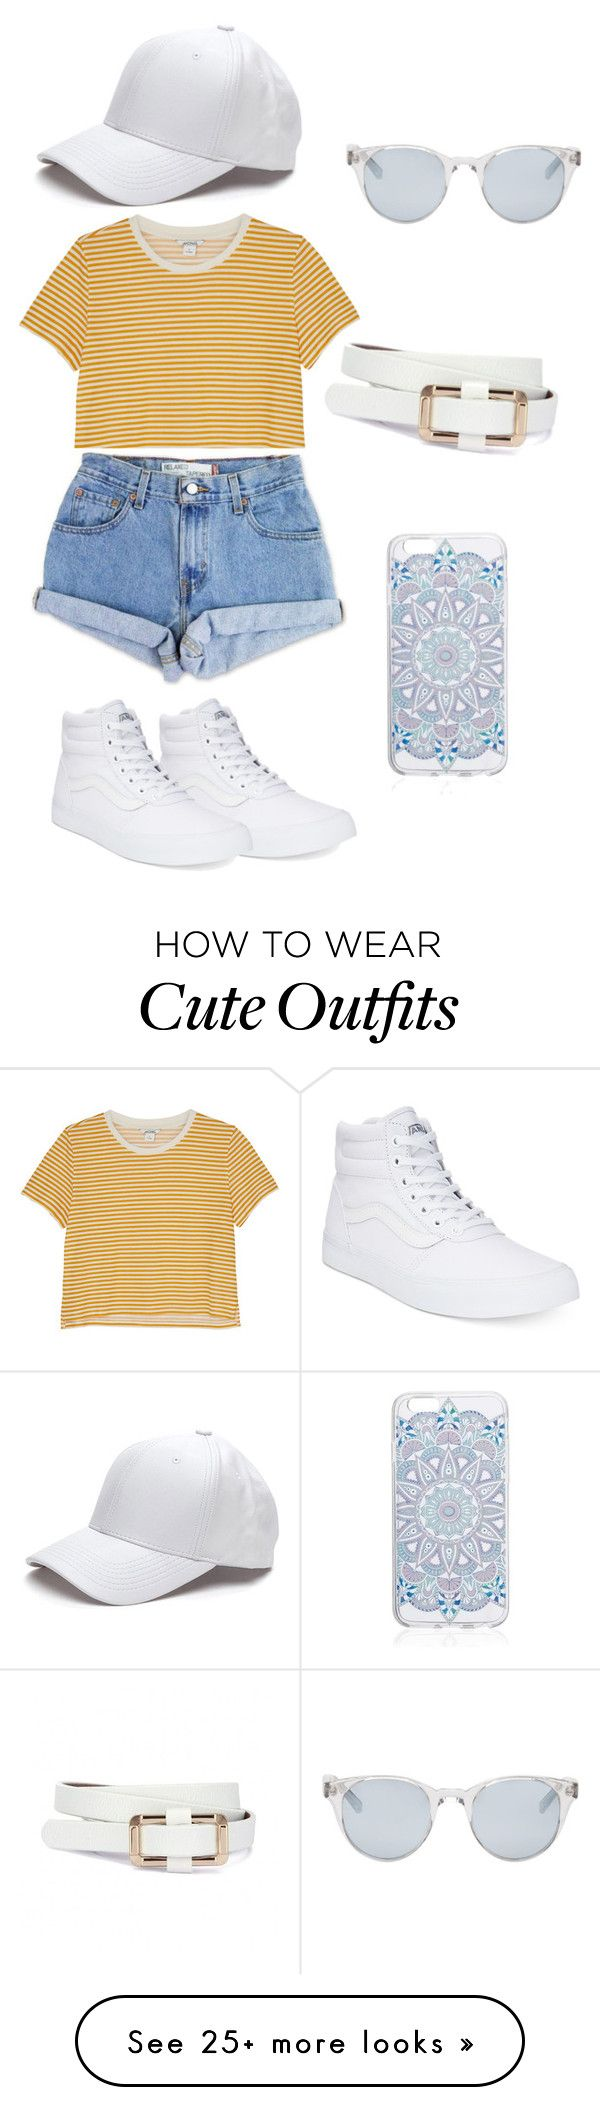 """Cute Cap Outfit~"" by aly-whelchel on Polyvore featuring Monki, Levi's, Vans, Sun Buddies, baseballcap and baseballhats"